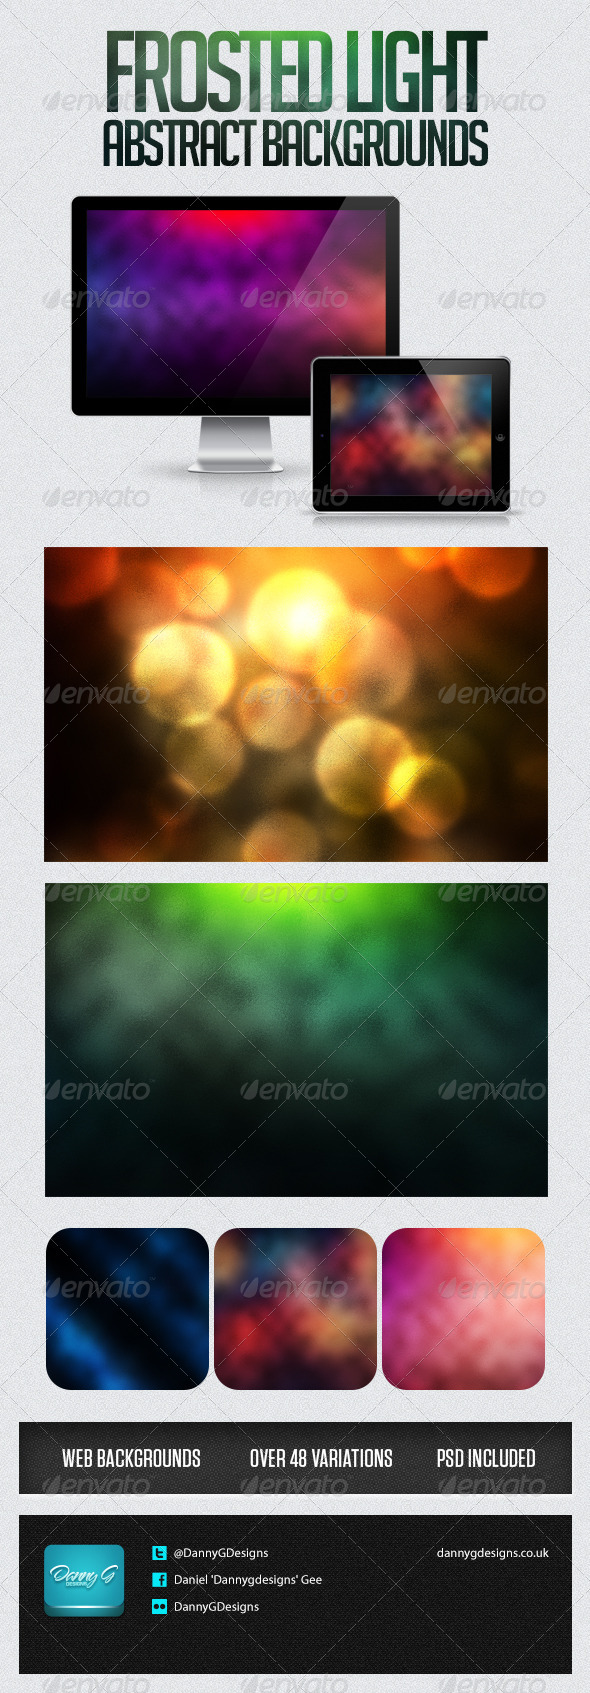 GraphicRiver Frosted Light Abstract Background 6525445